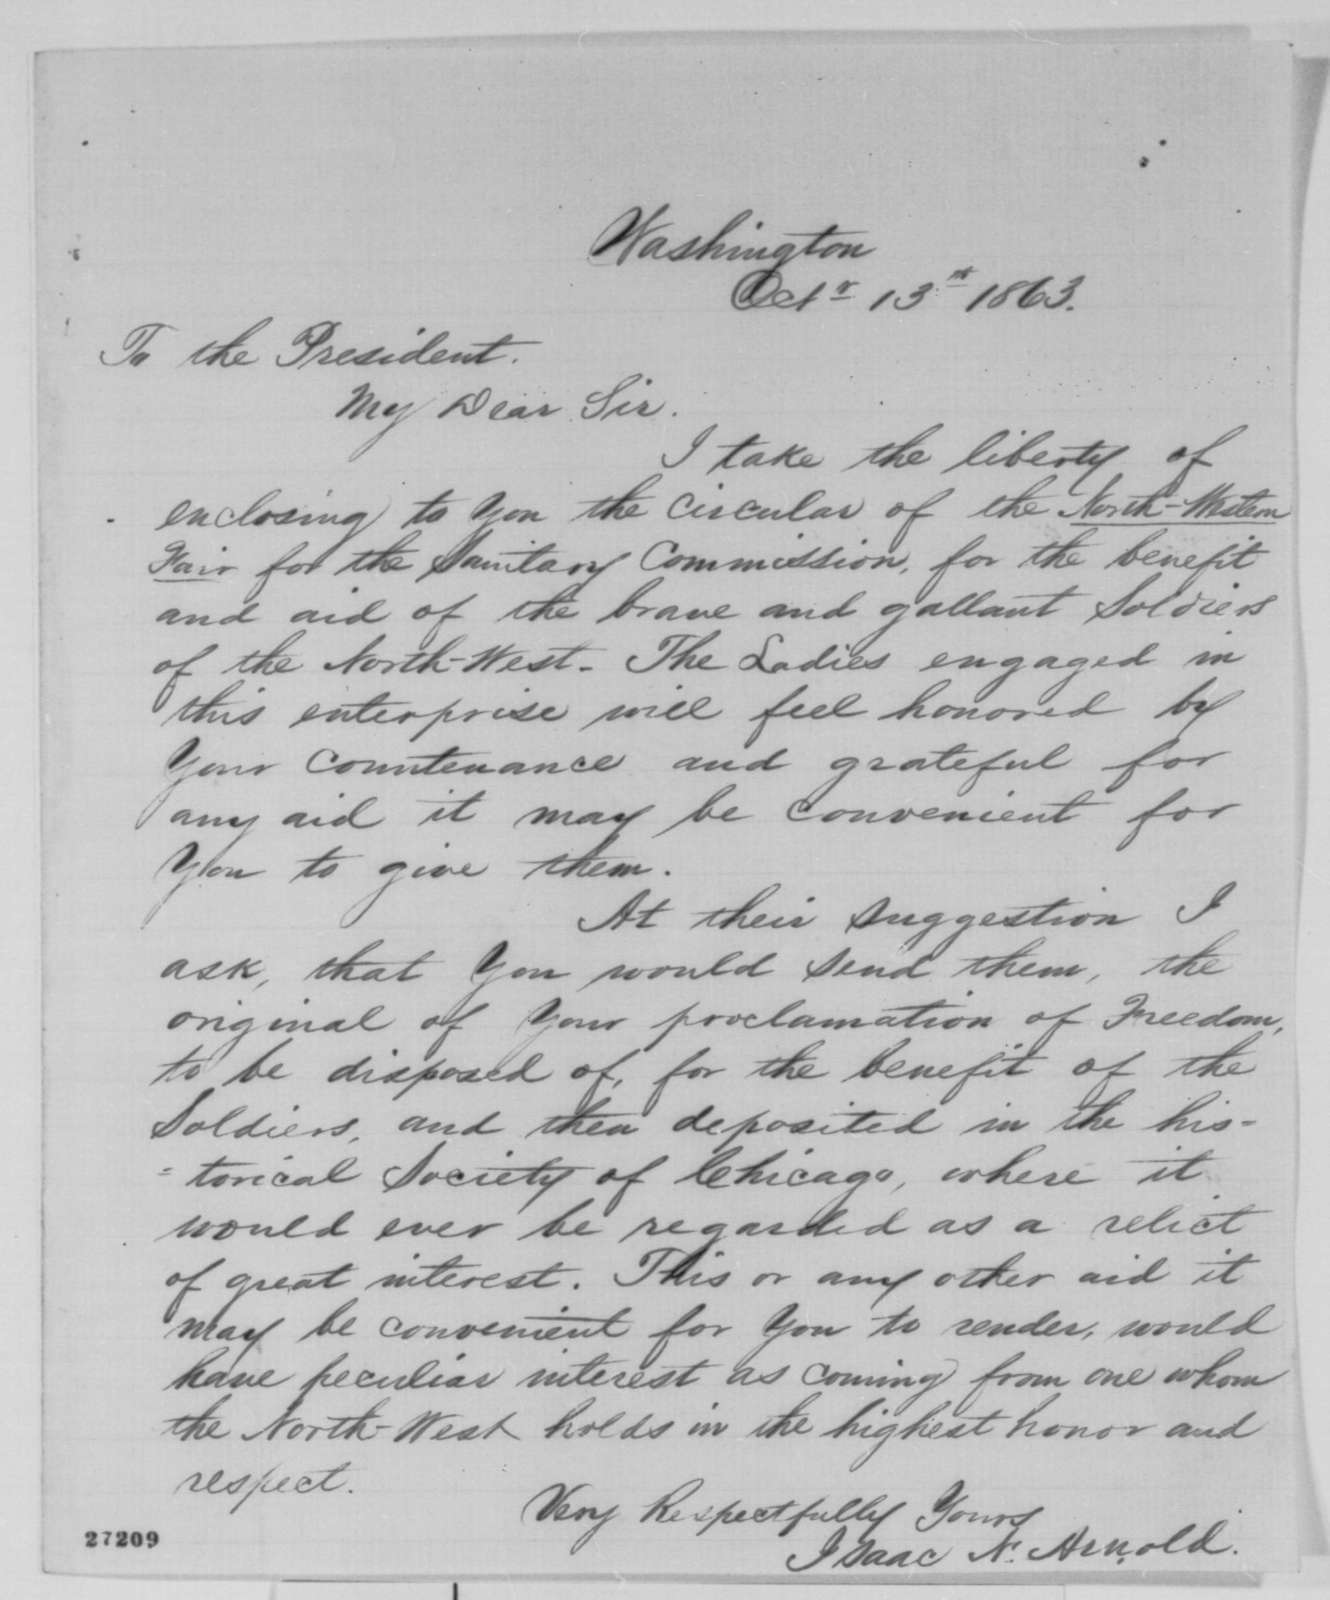 Isaac N. Arnold to Abraham Lincoln, Tuesday, October 13, 1863  (Requests original draft of Emancipation Proclamation for benefit of North-Western Sanitary Fair)